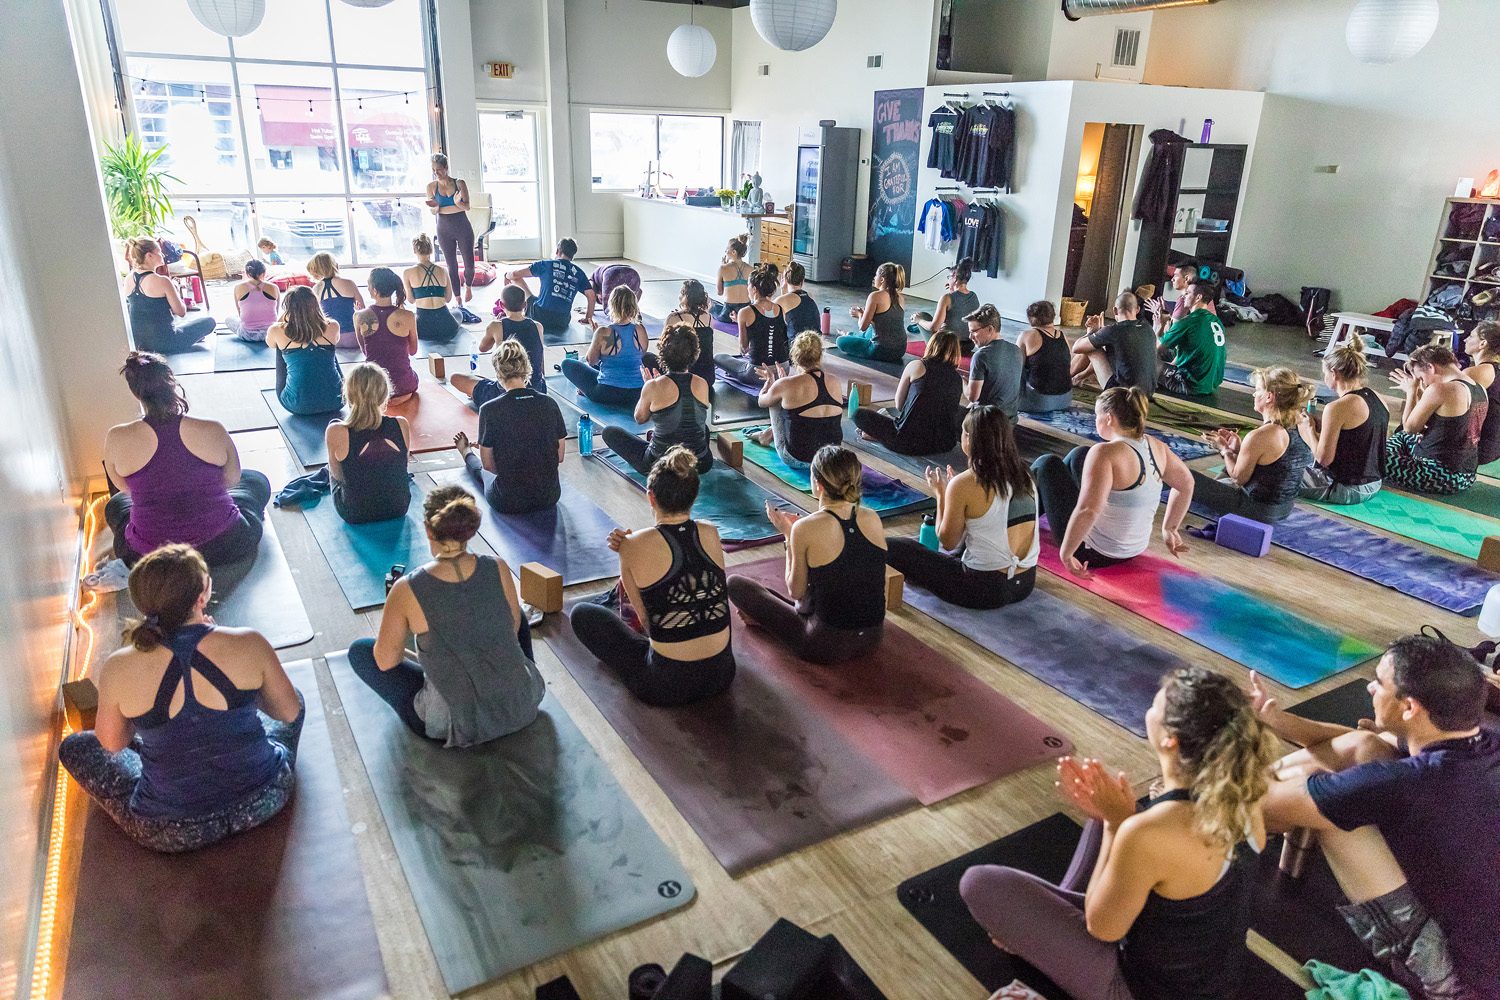 Homegrown Power Yoga teaches Hot Vinyasa Flow Yoga